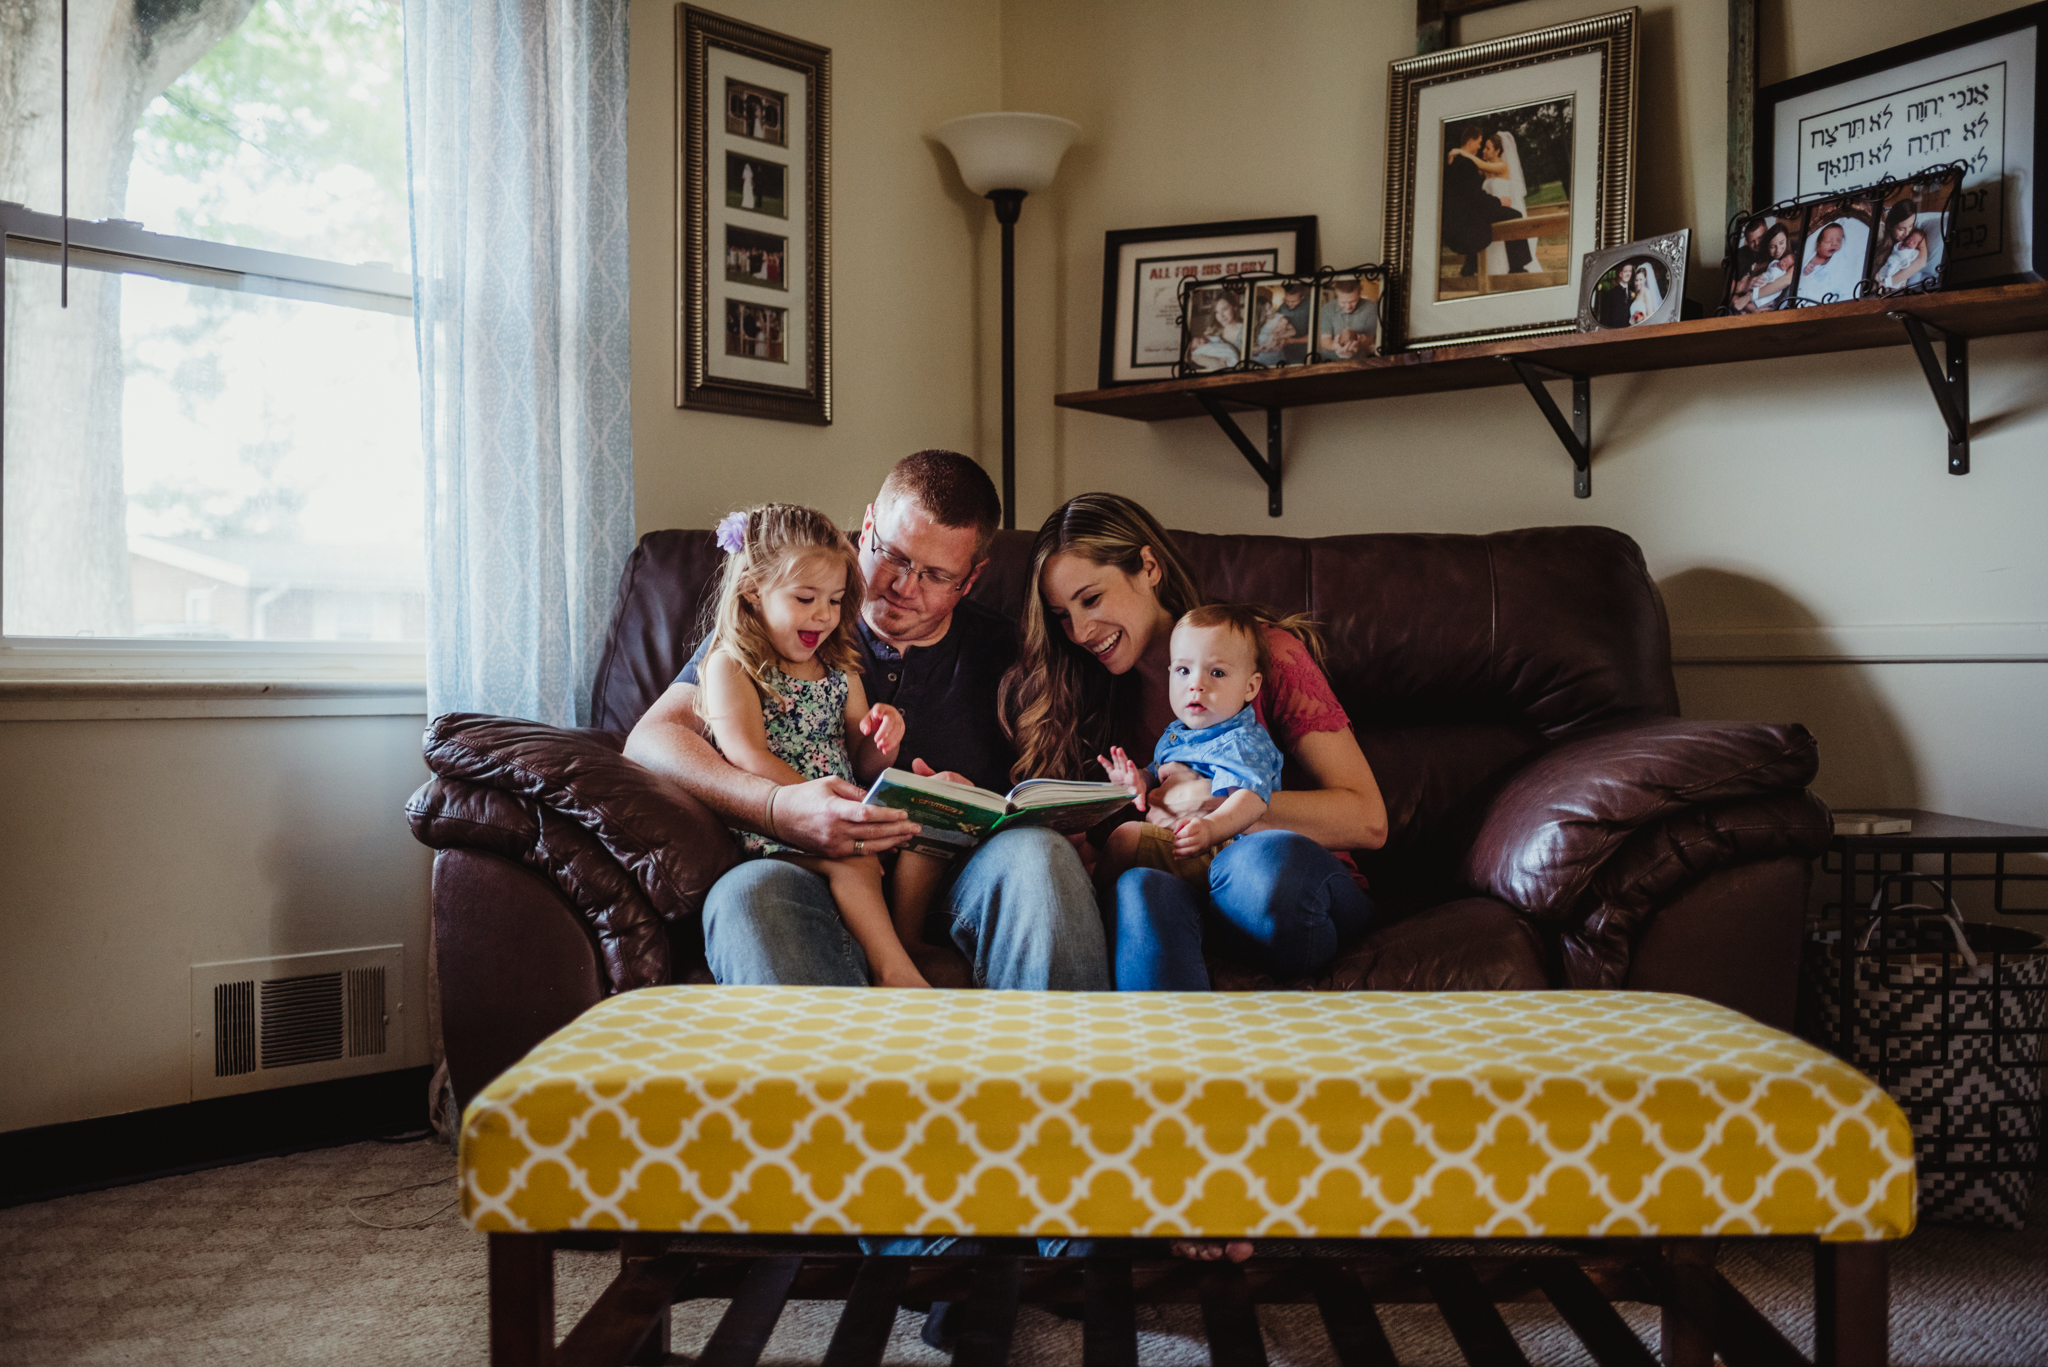 The family has story time together on the couch in the living room during their lifestyle session at home in Wake Forest with Rose Trail Images.